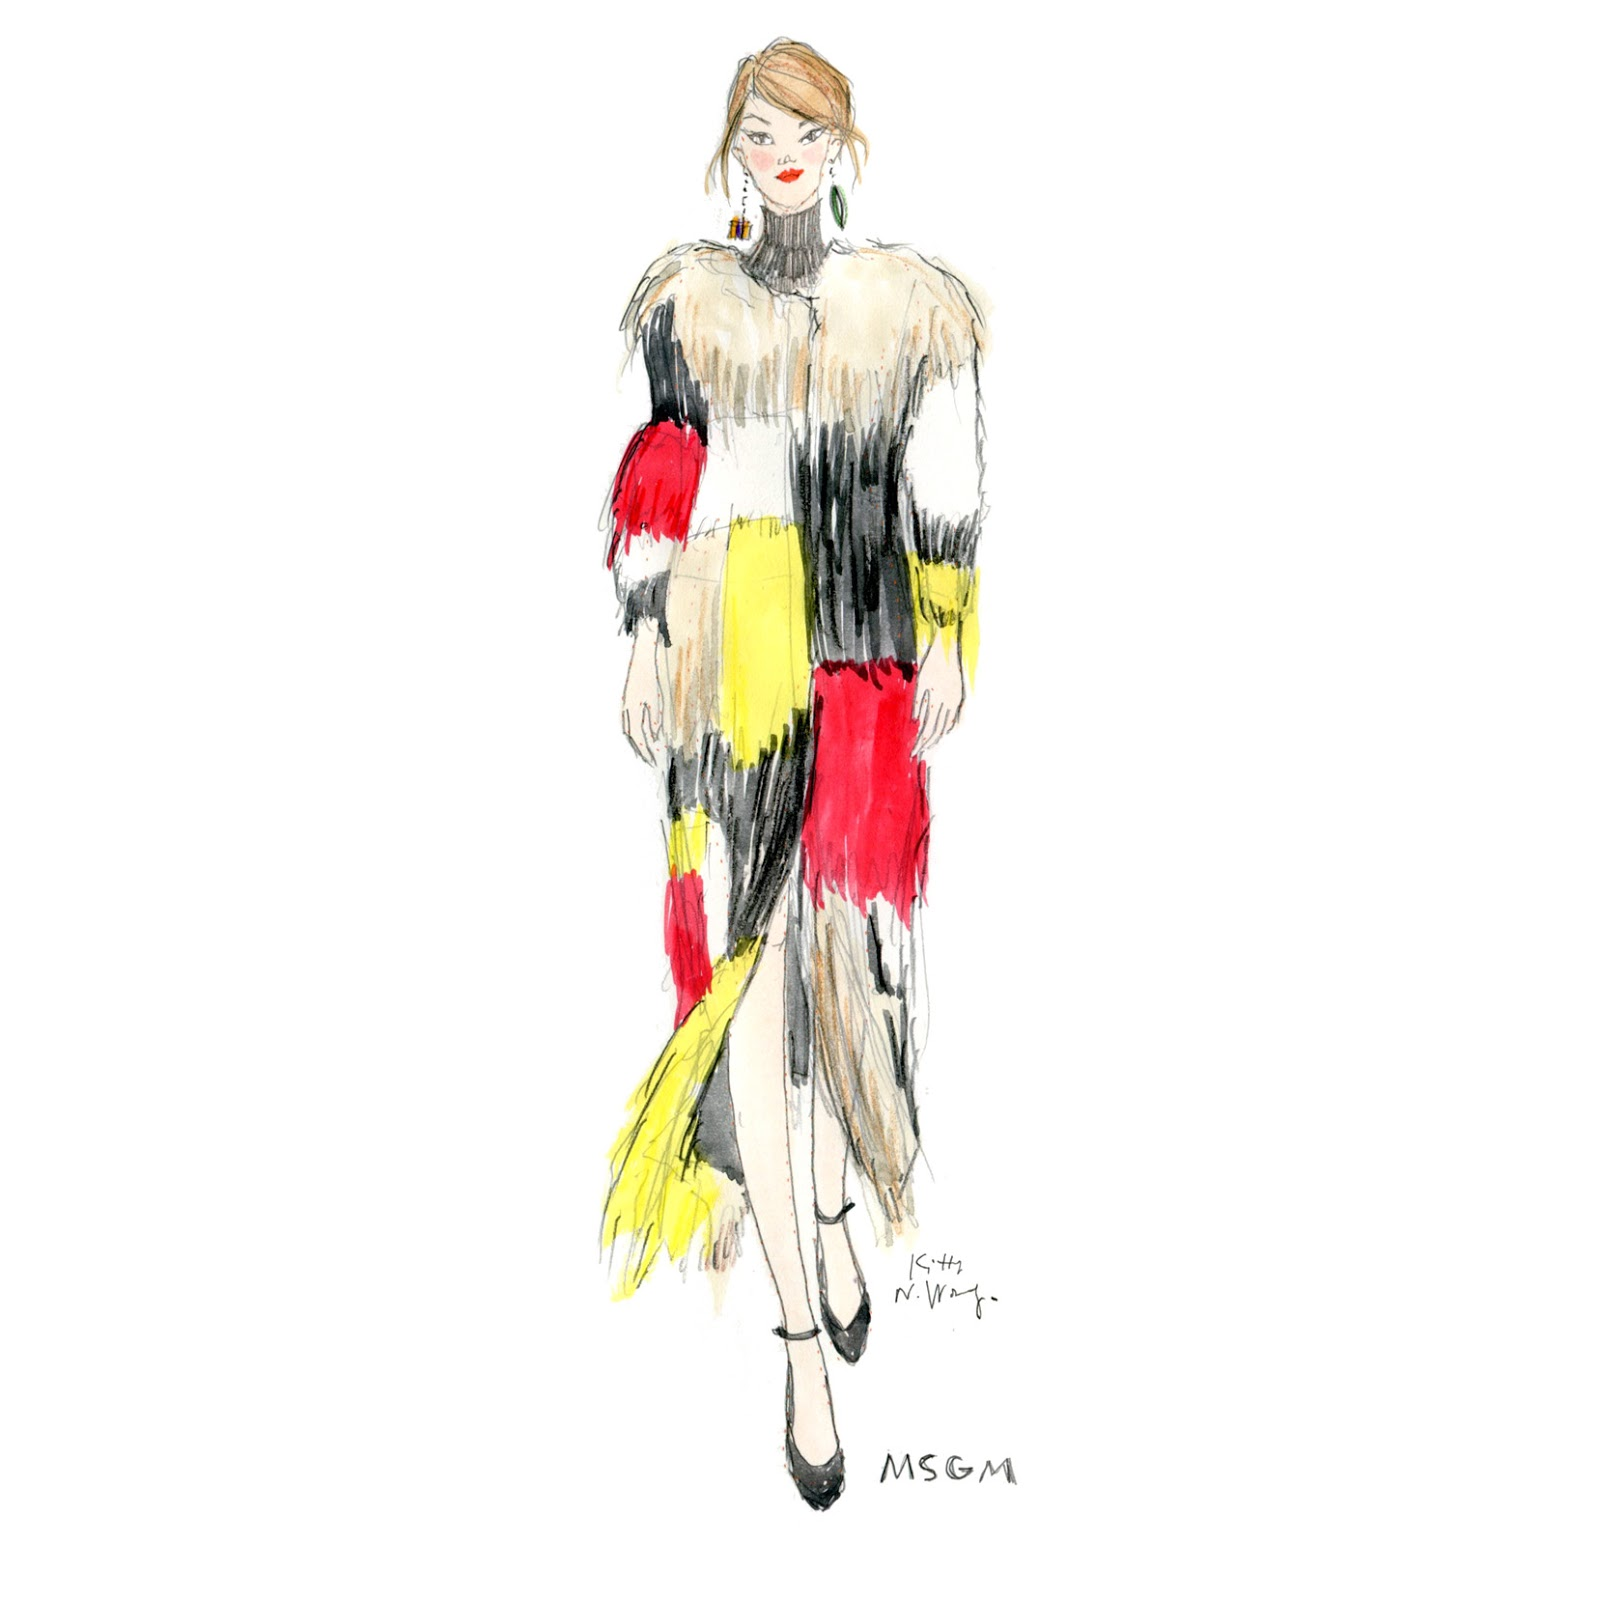 Kitty N. Wong / Fashionary MSGM Sketch